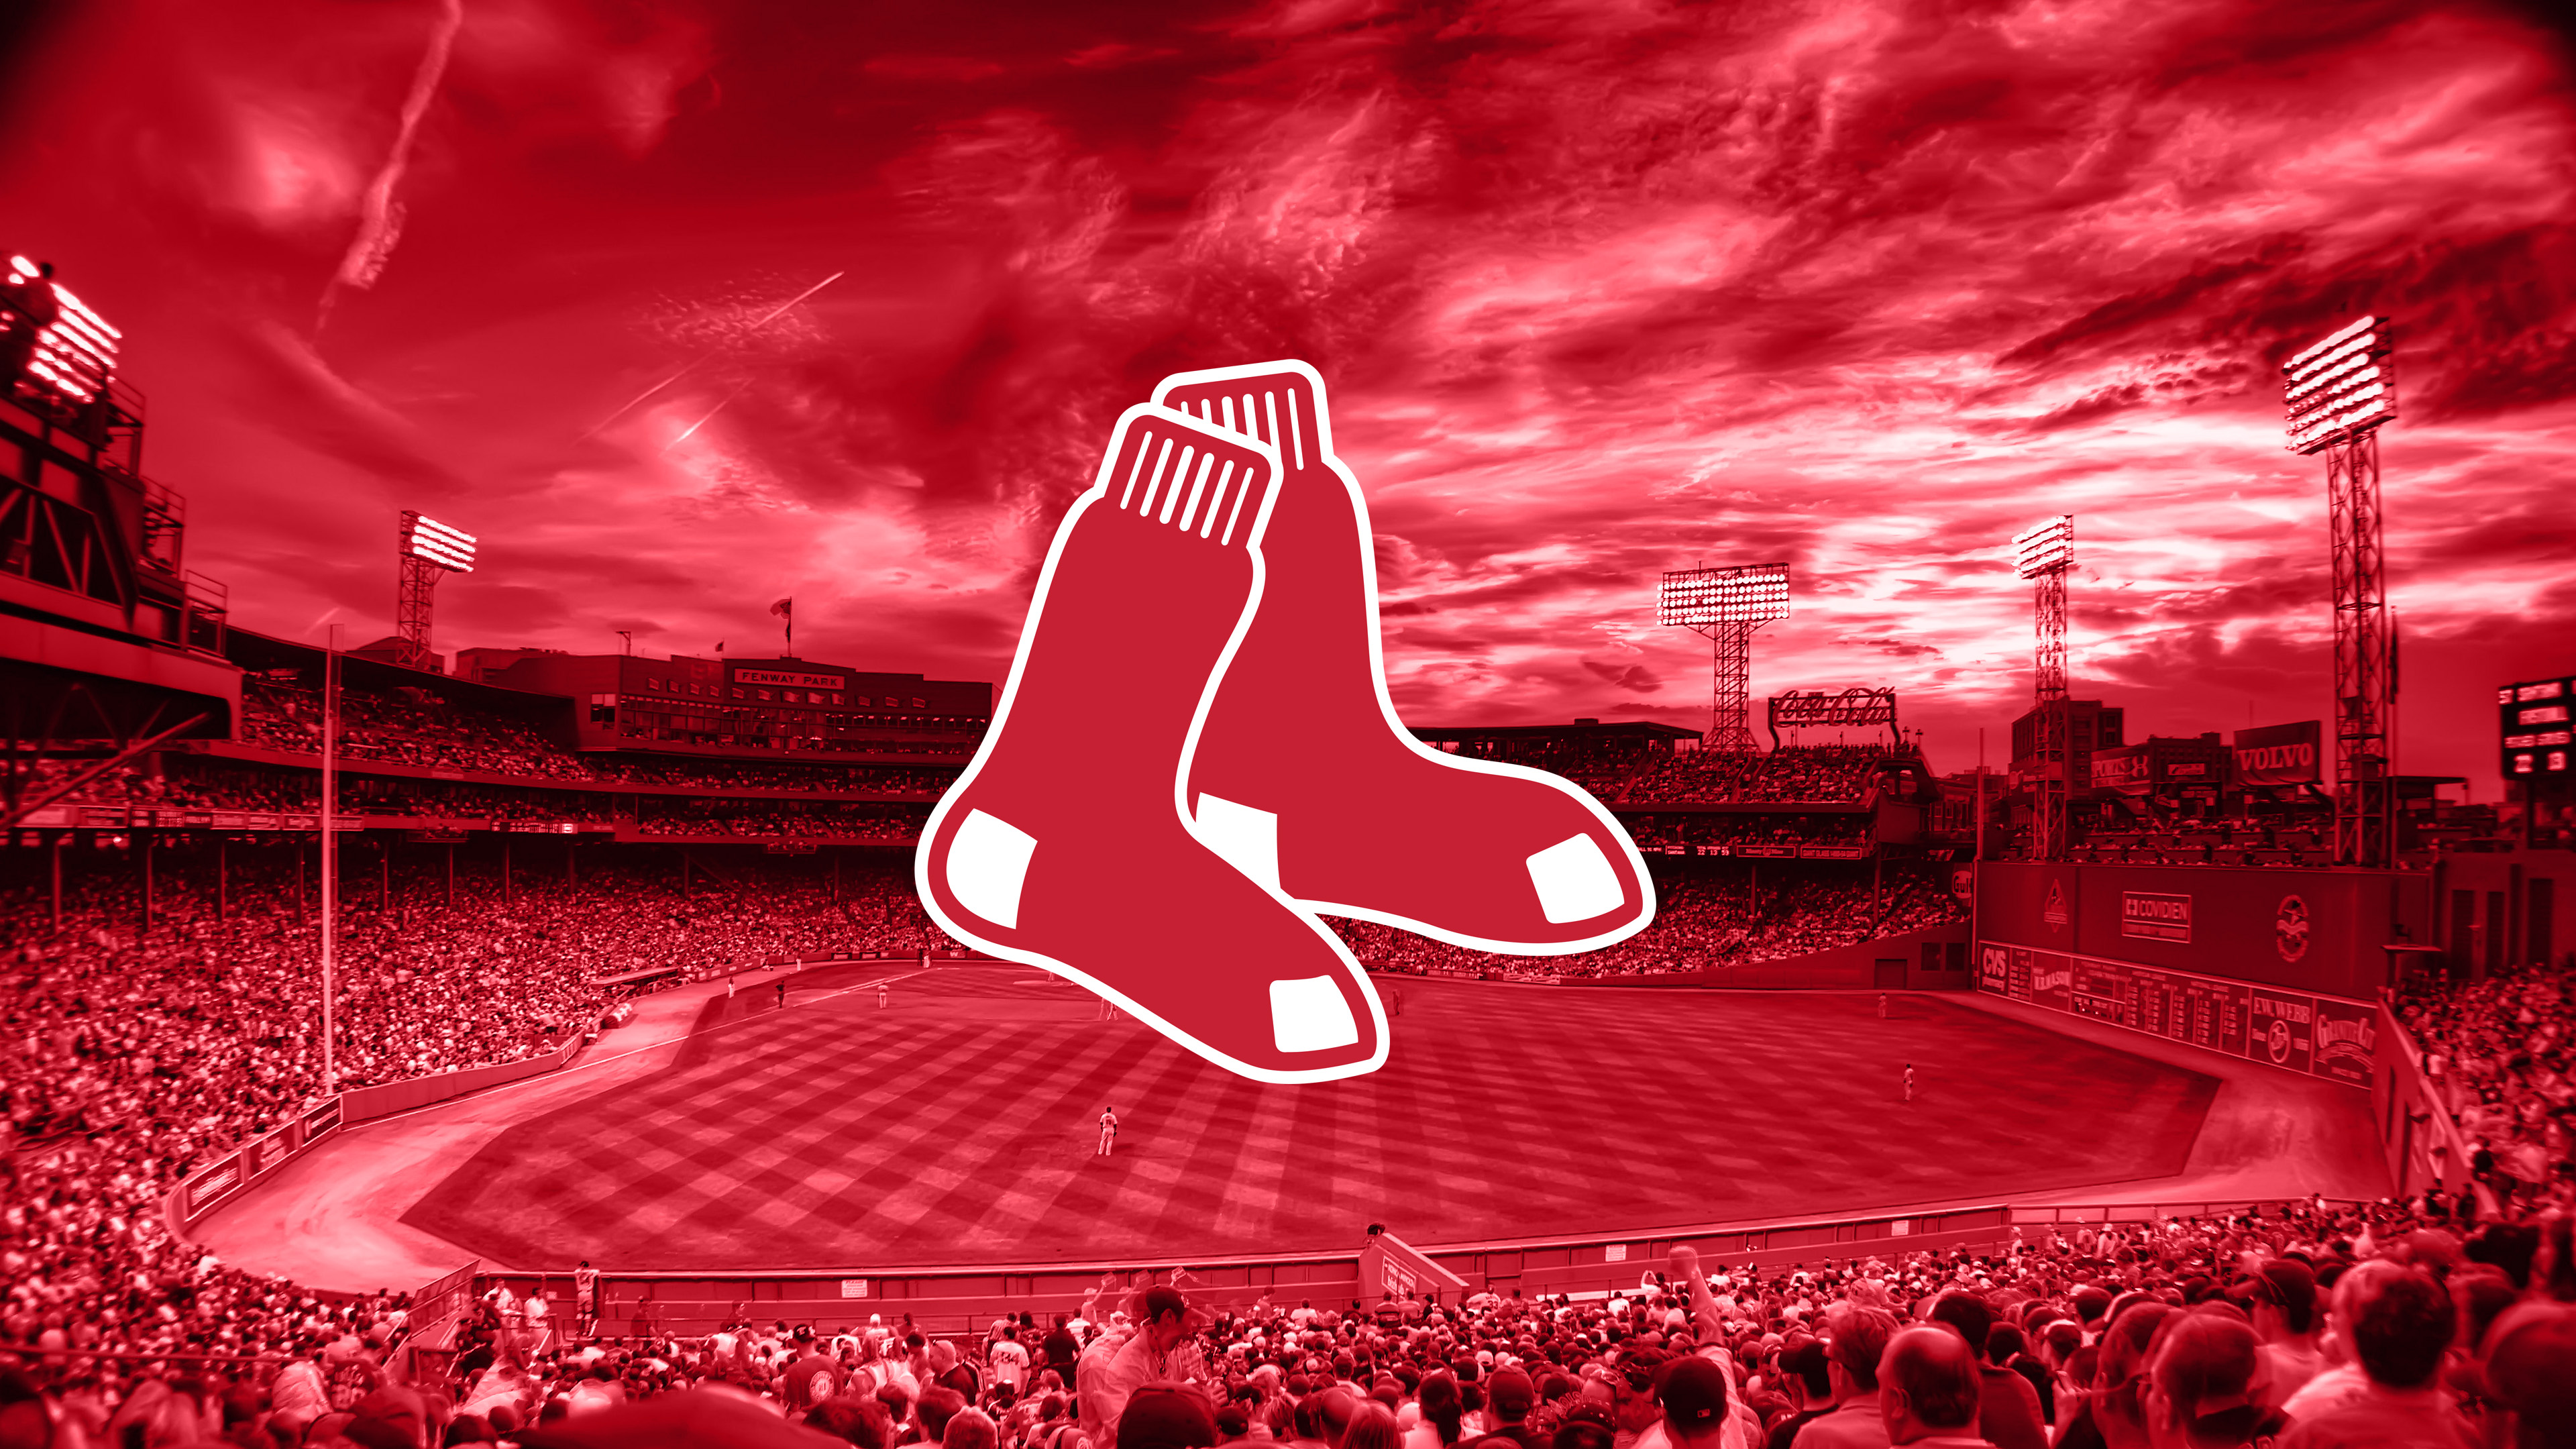 MLB Boston Red Sox 2015 Logo 4K Wallpaper 3840x2160